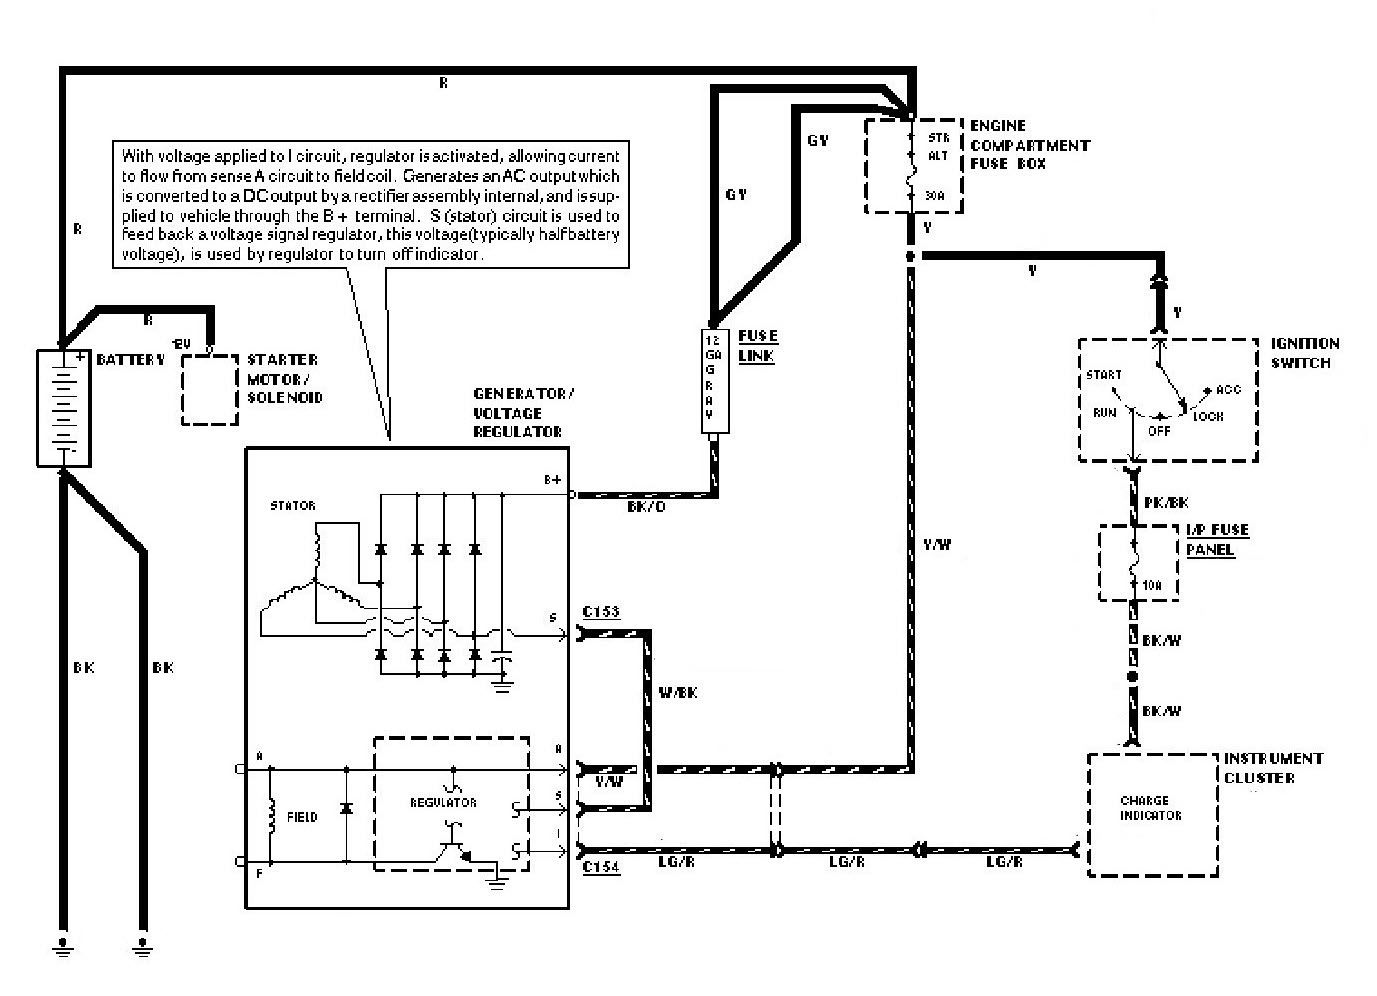 65e64c1001ab71f381e720fc1ace9e7c regulator wiring diagram voltage converter wiring diagram \u2022 wiring  at reclaimingppi.co